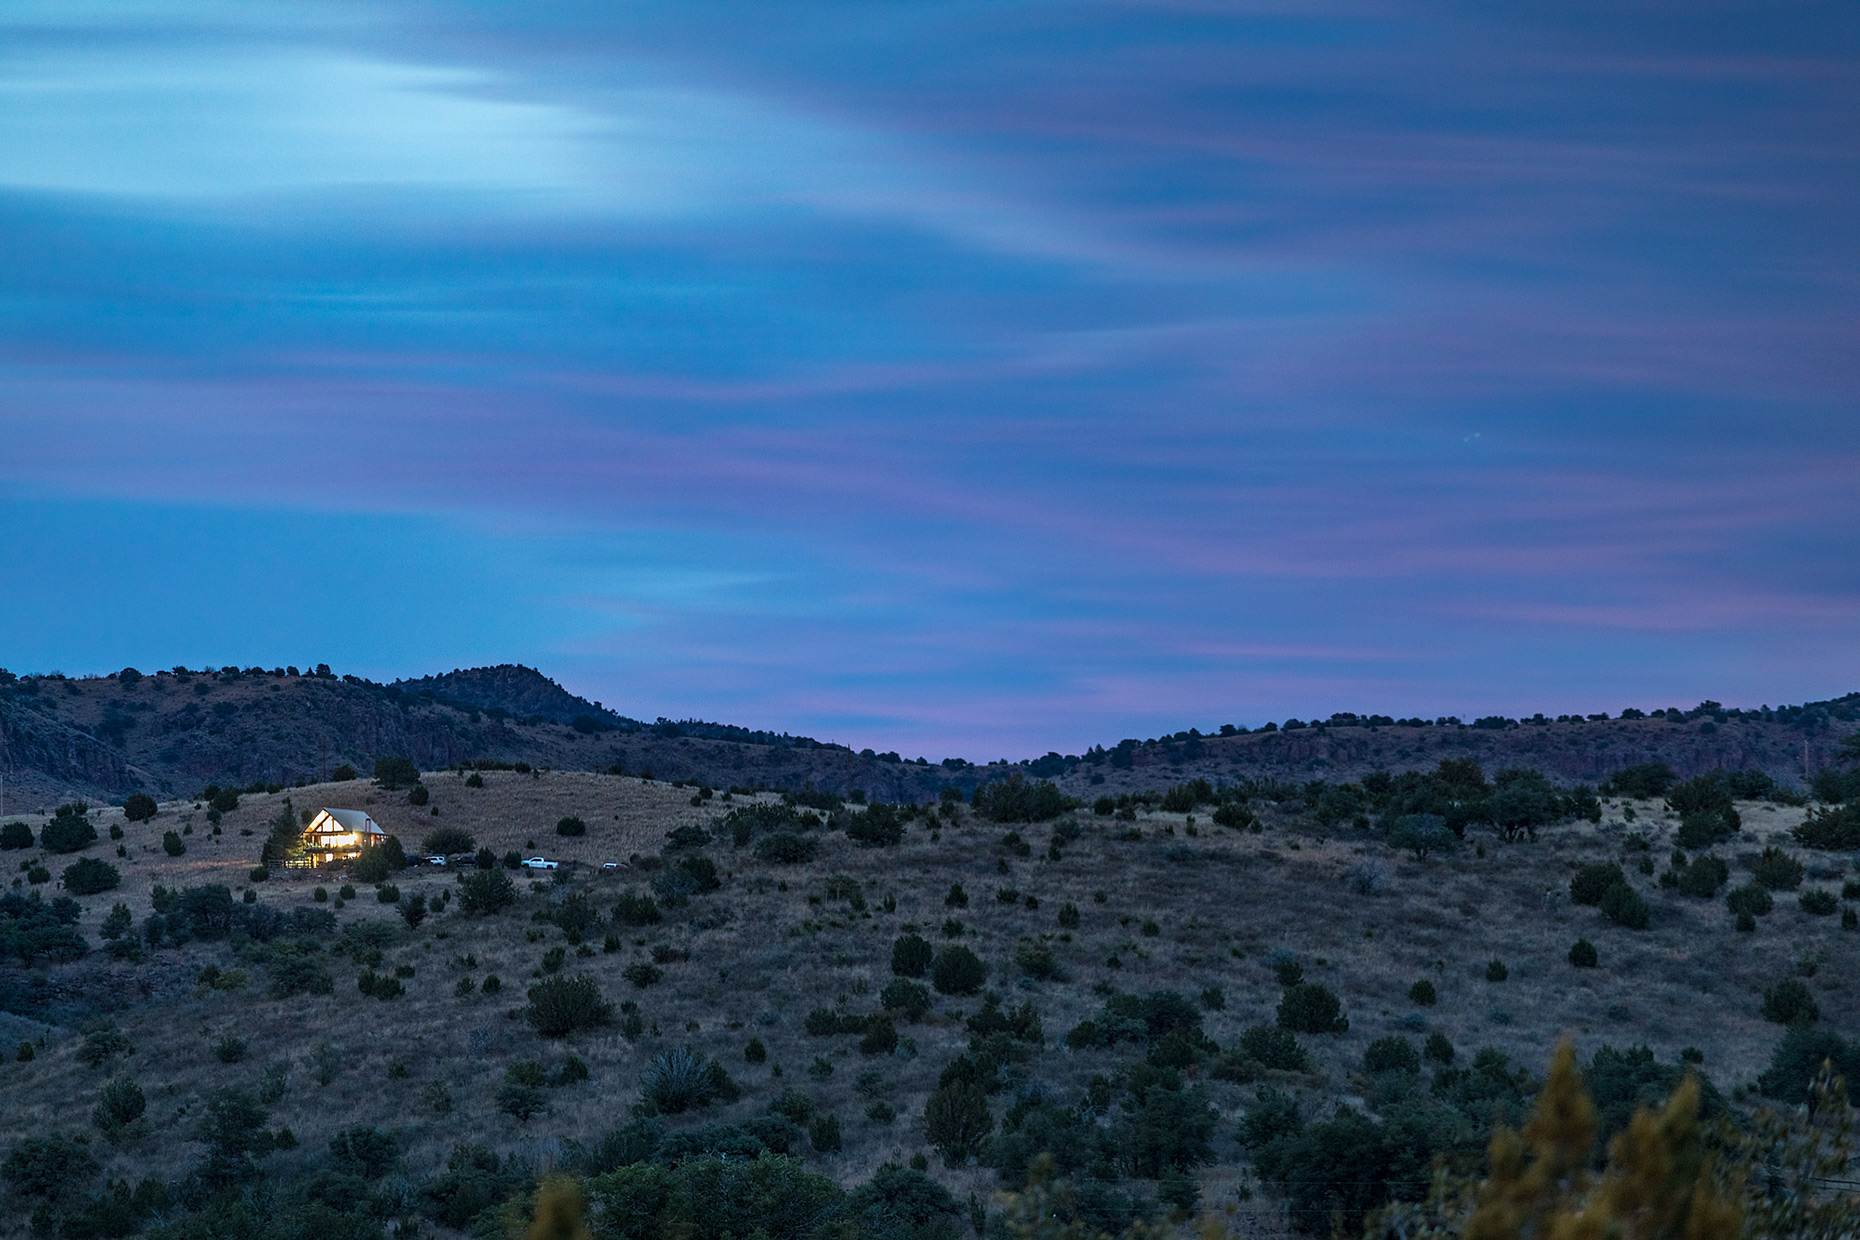 Cabin in the Davis Mountains at dusk